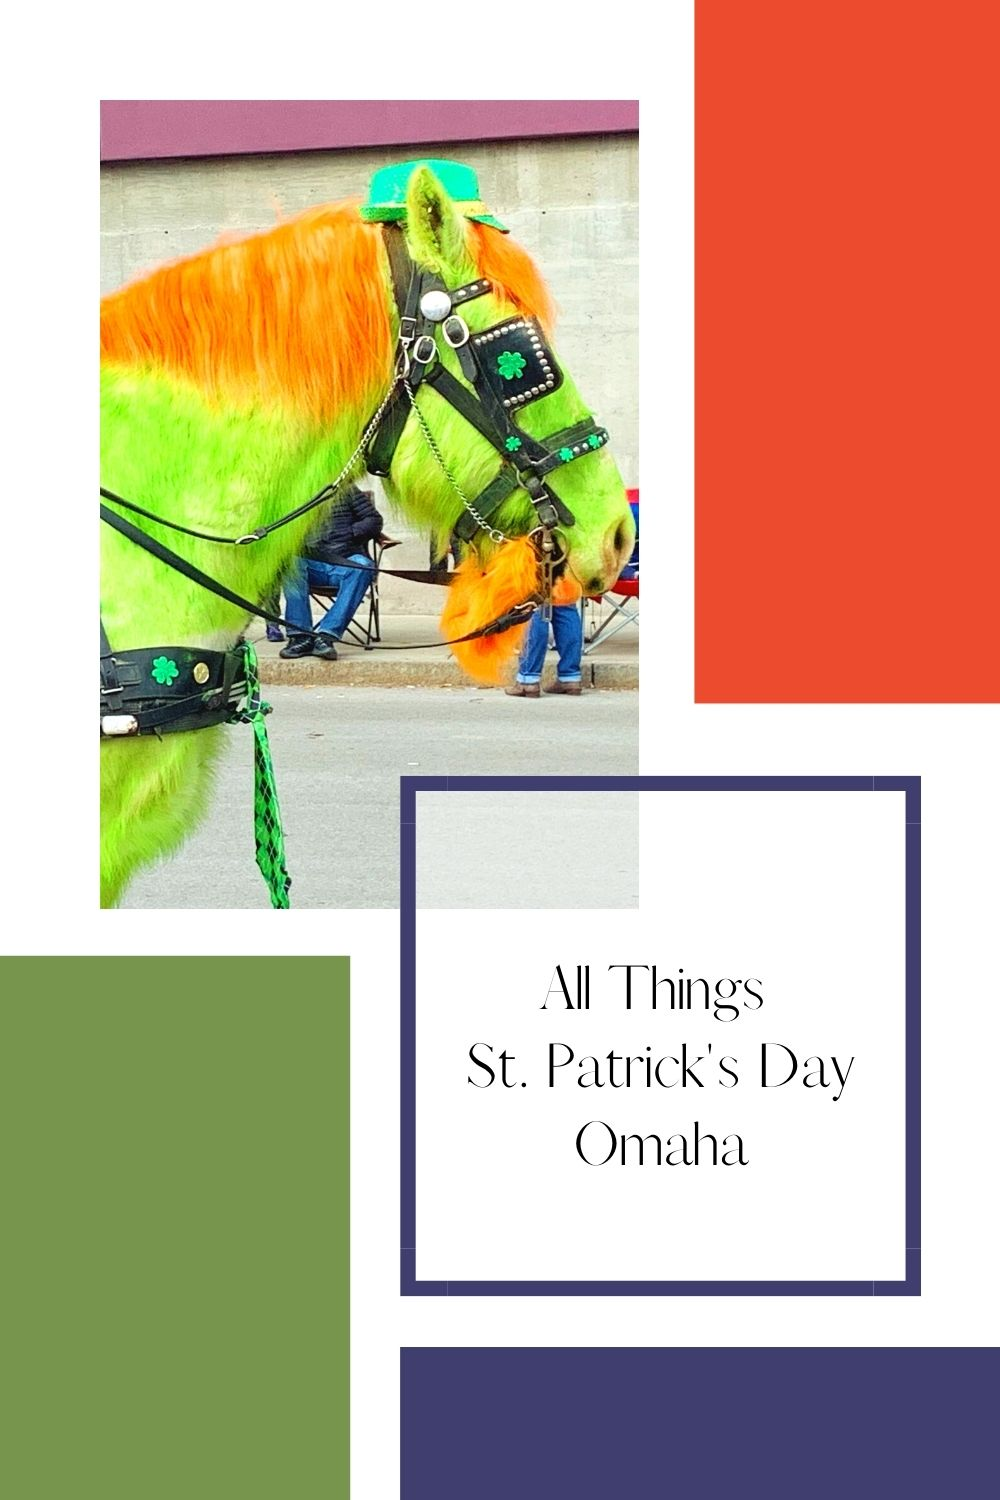 The complete guide to celebrating St. Patrick's Day in Omaha, Nebraska. Find all the fun Irish bars and restaurants, where to shop for green clothes, and when the parade, fun runs and Irish dinners are planned.